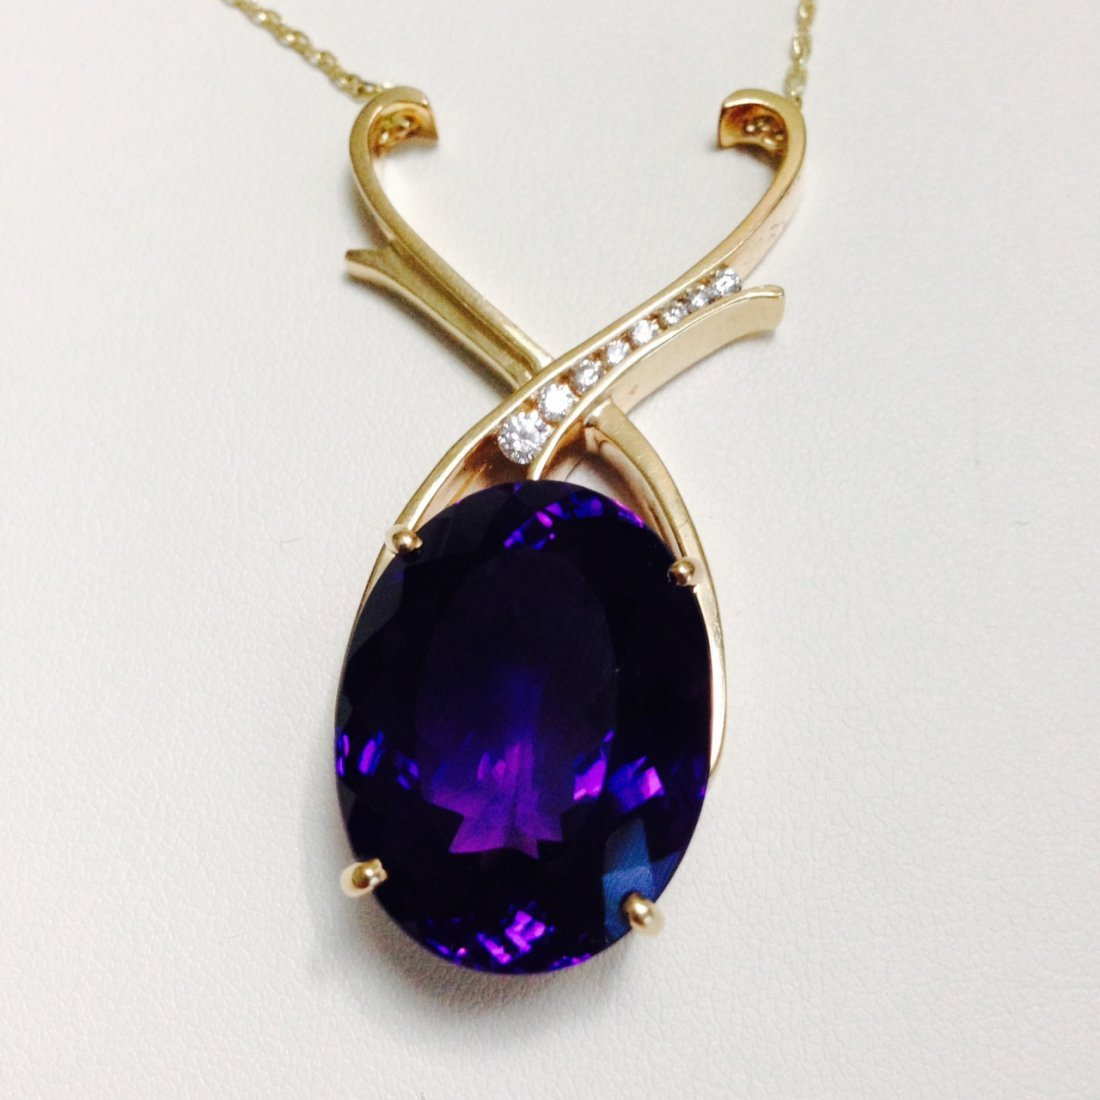 35 carat Amethyst and Diamond Necklace